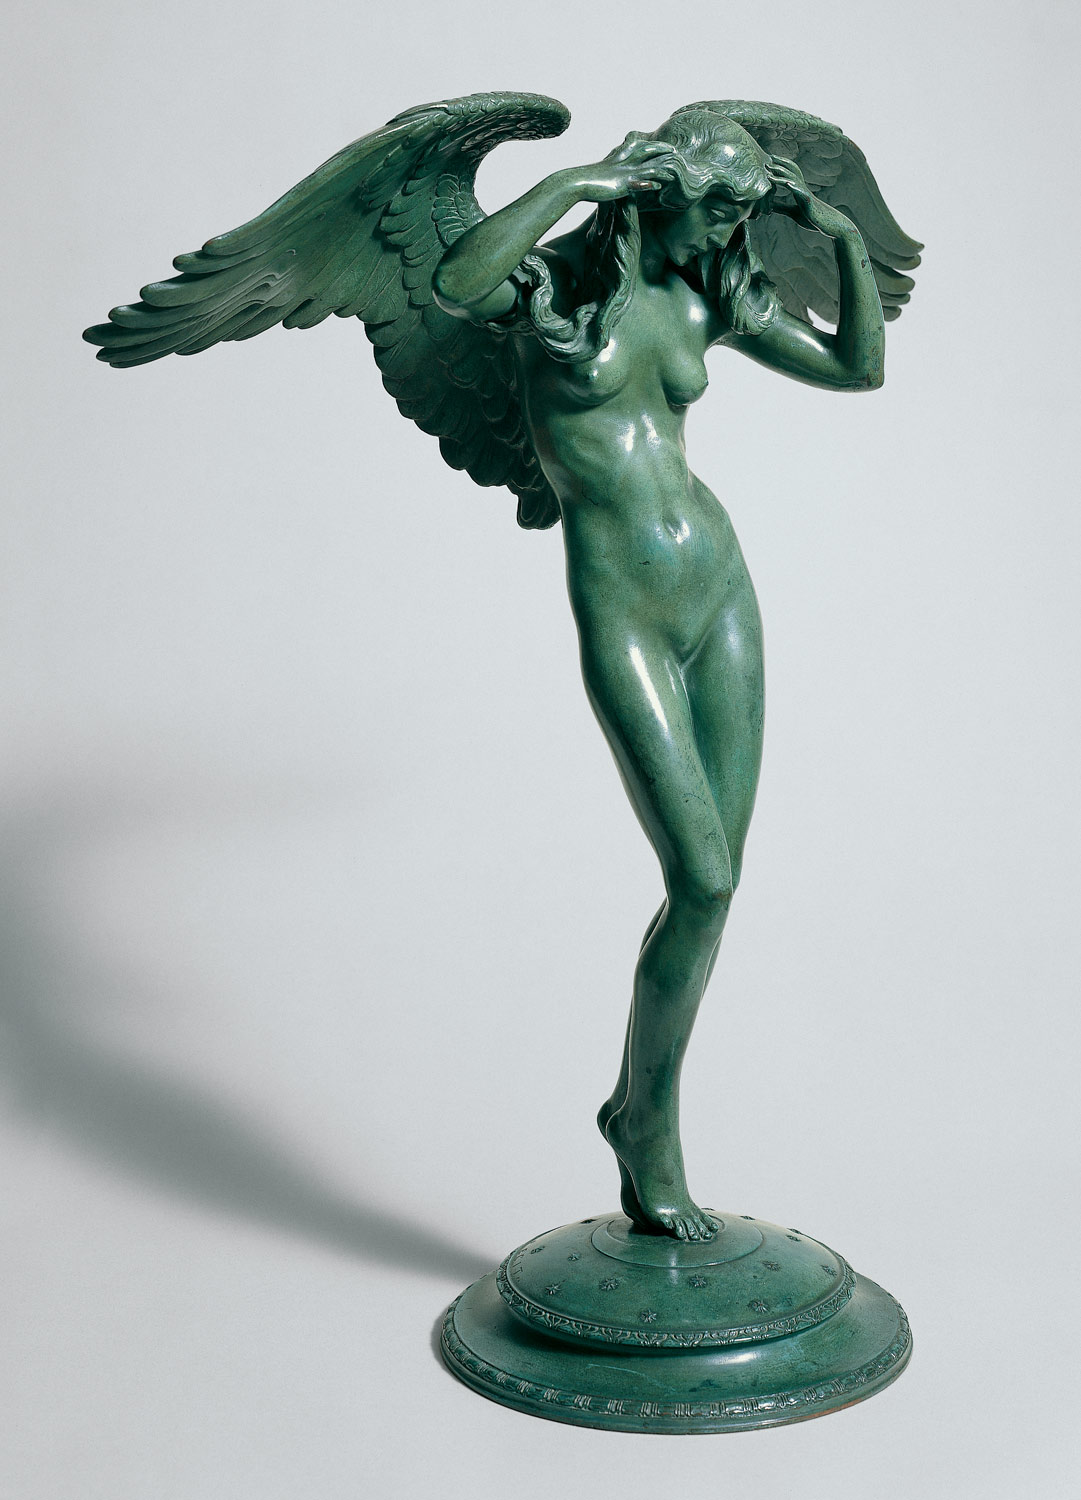 Descending Night